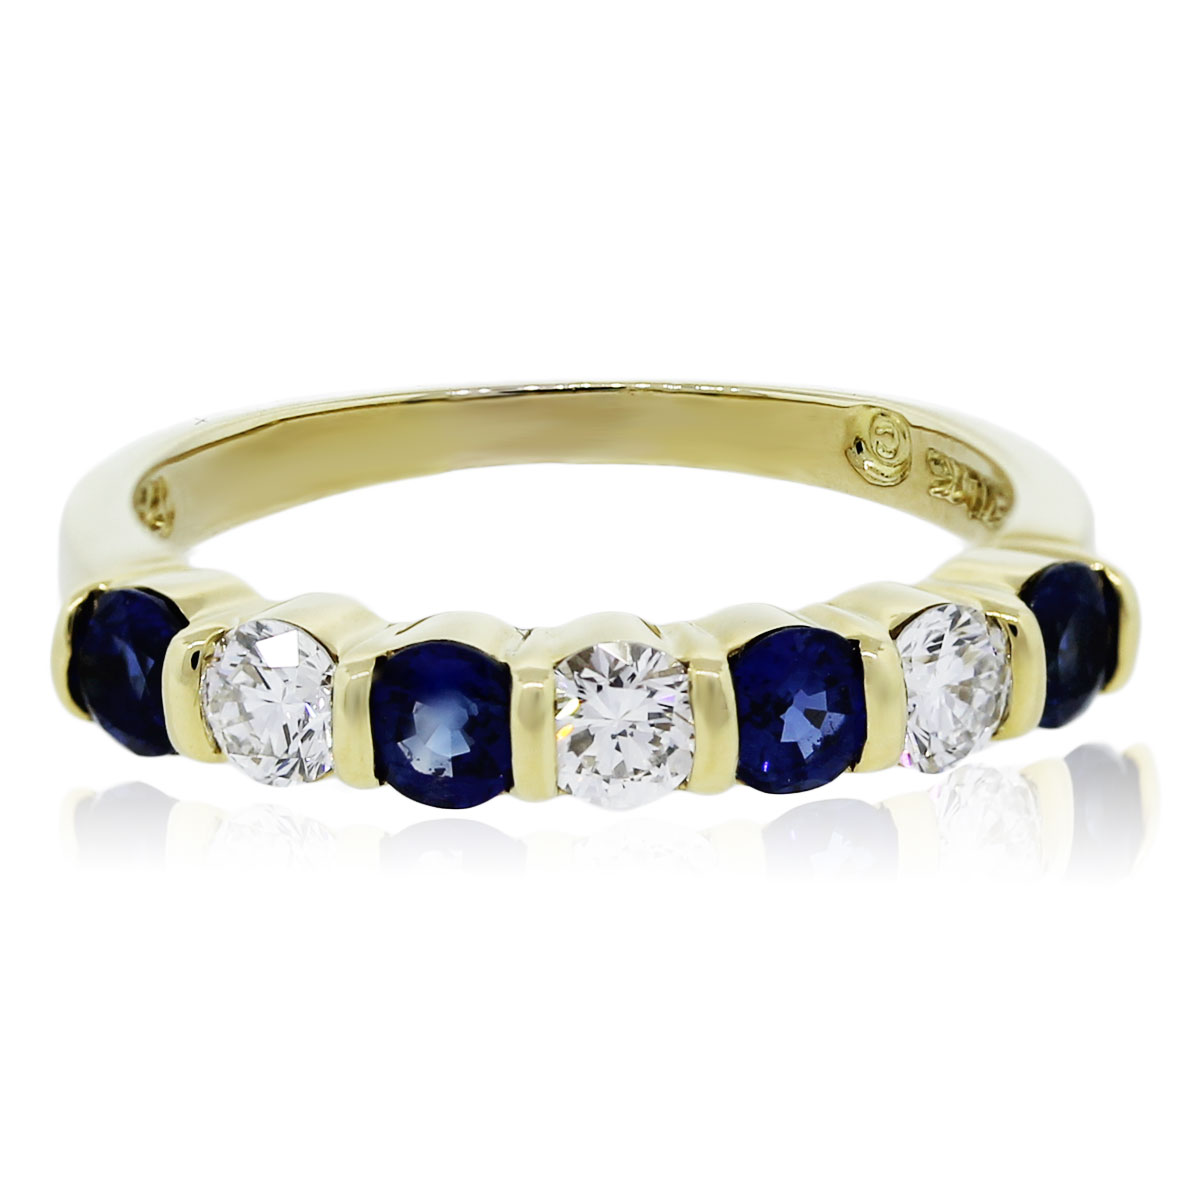 You are viewing this 18K Yellow Gold Diamond and Sapphire Ring!